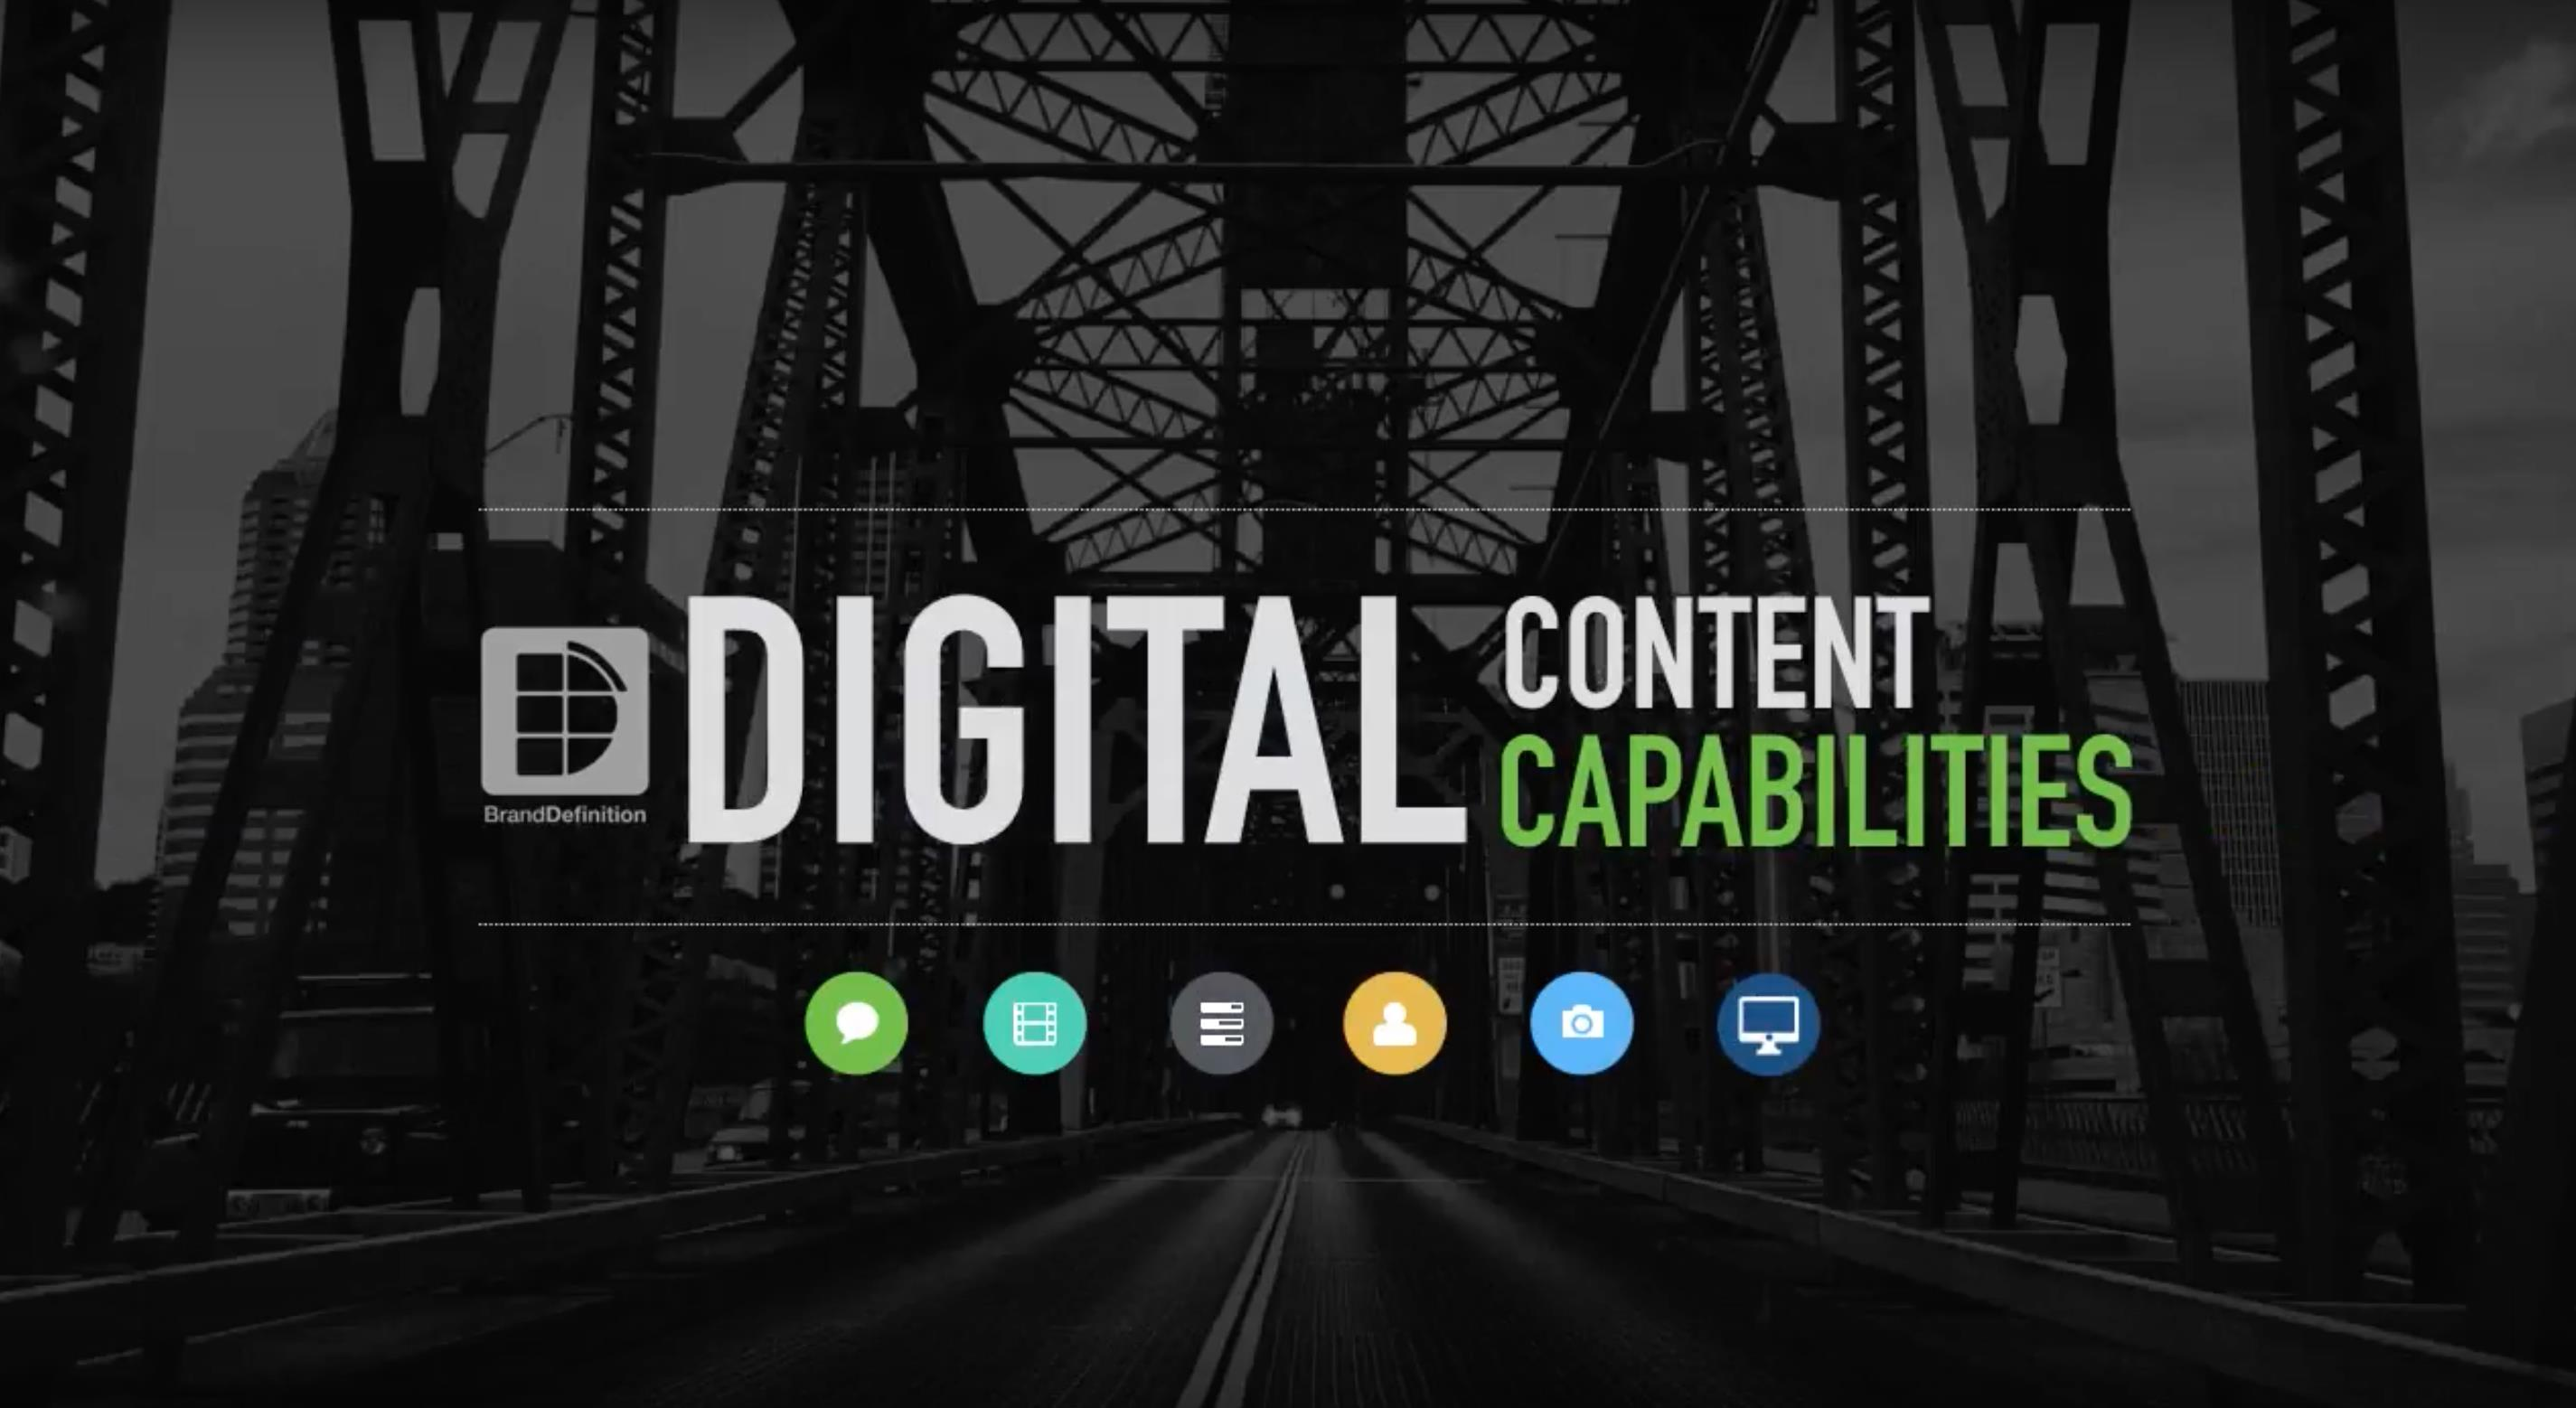 Brand Definition Digital Content Capabilities